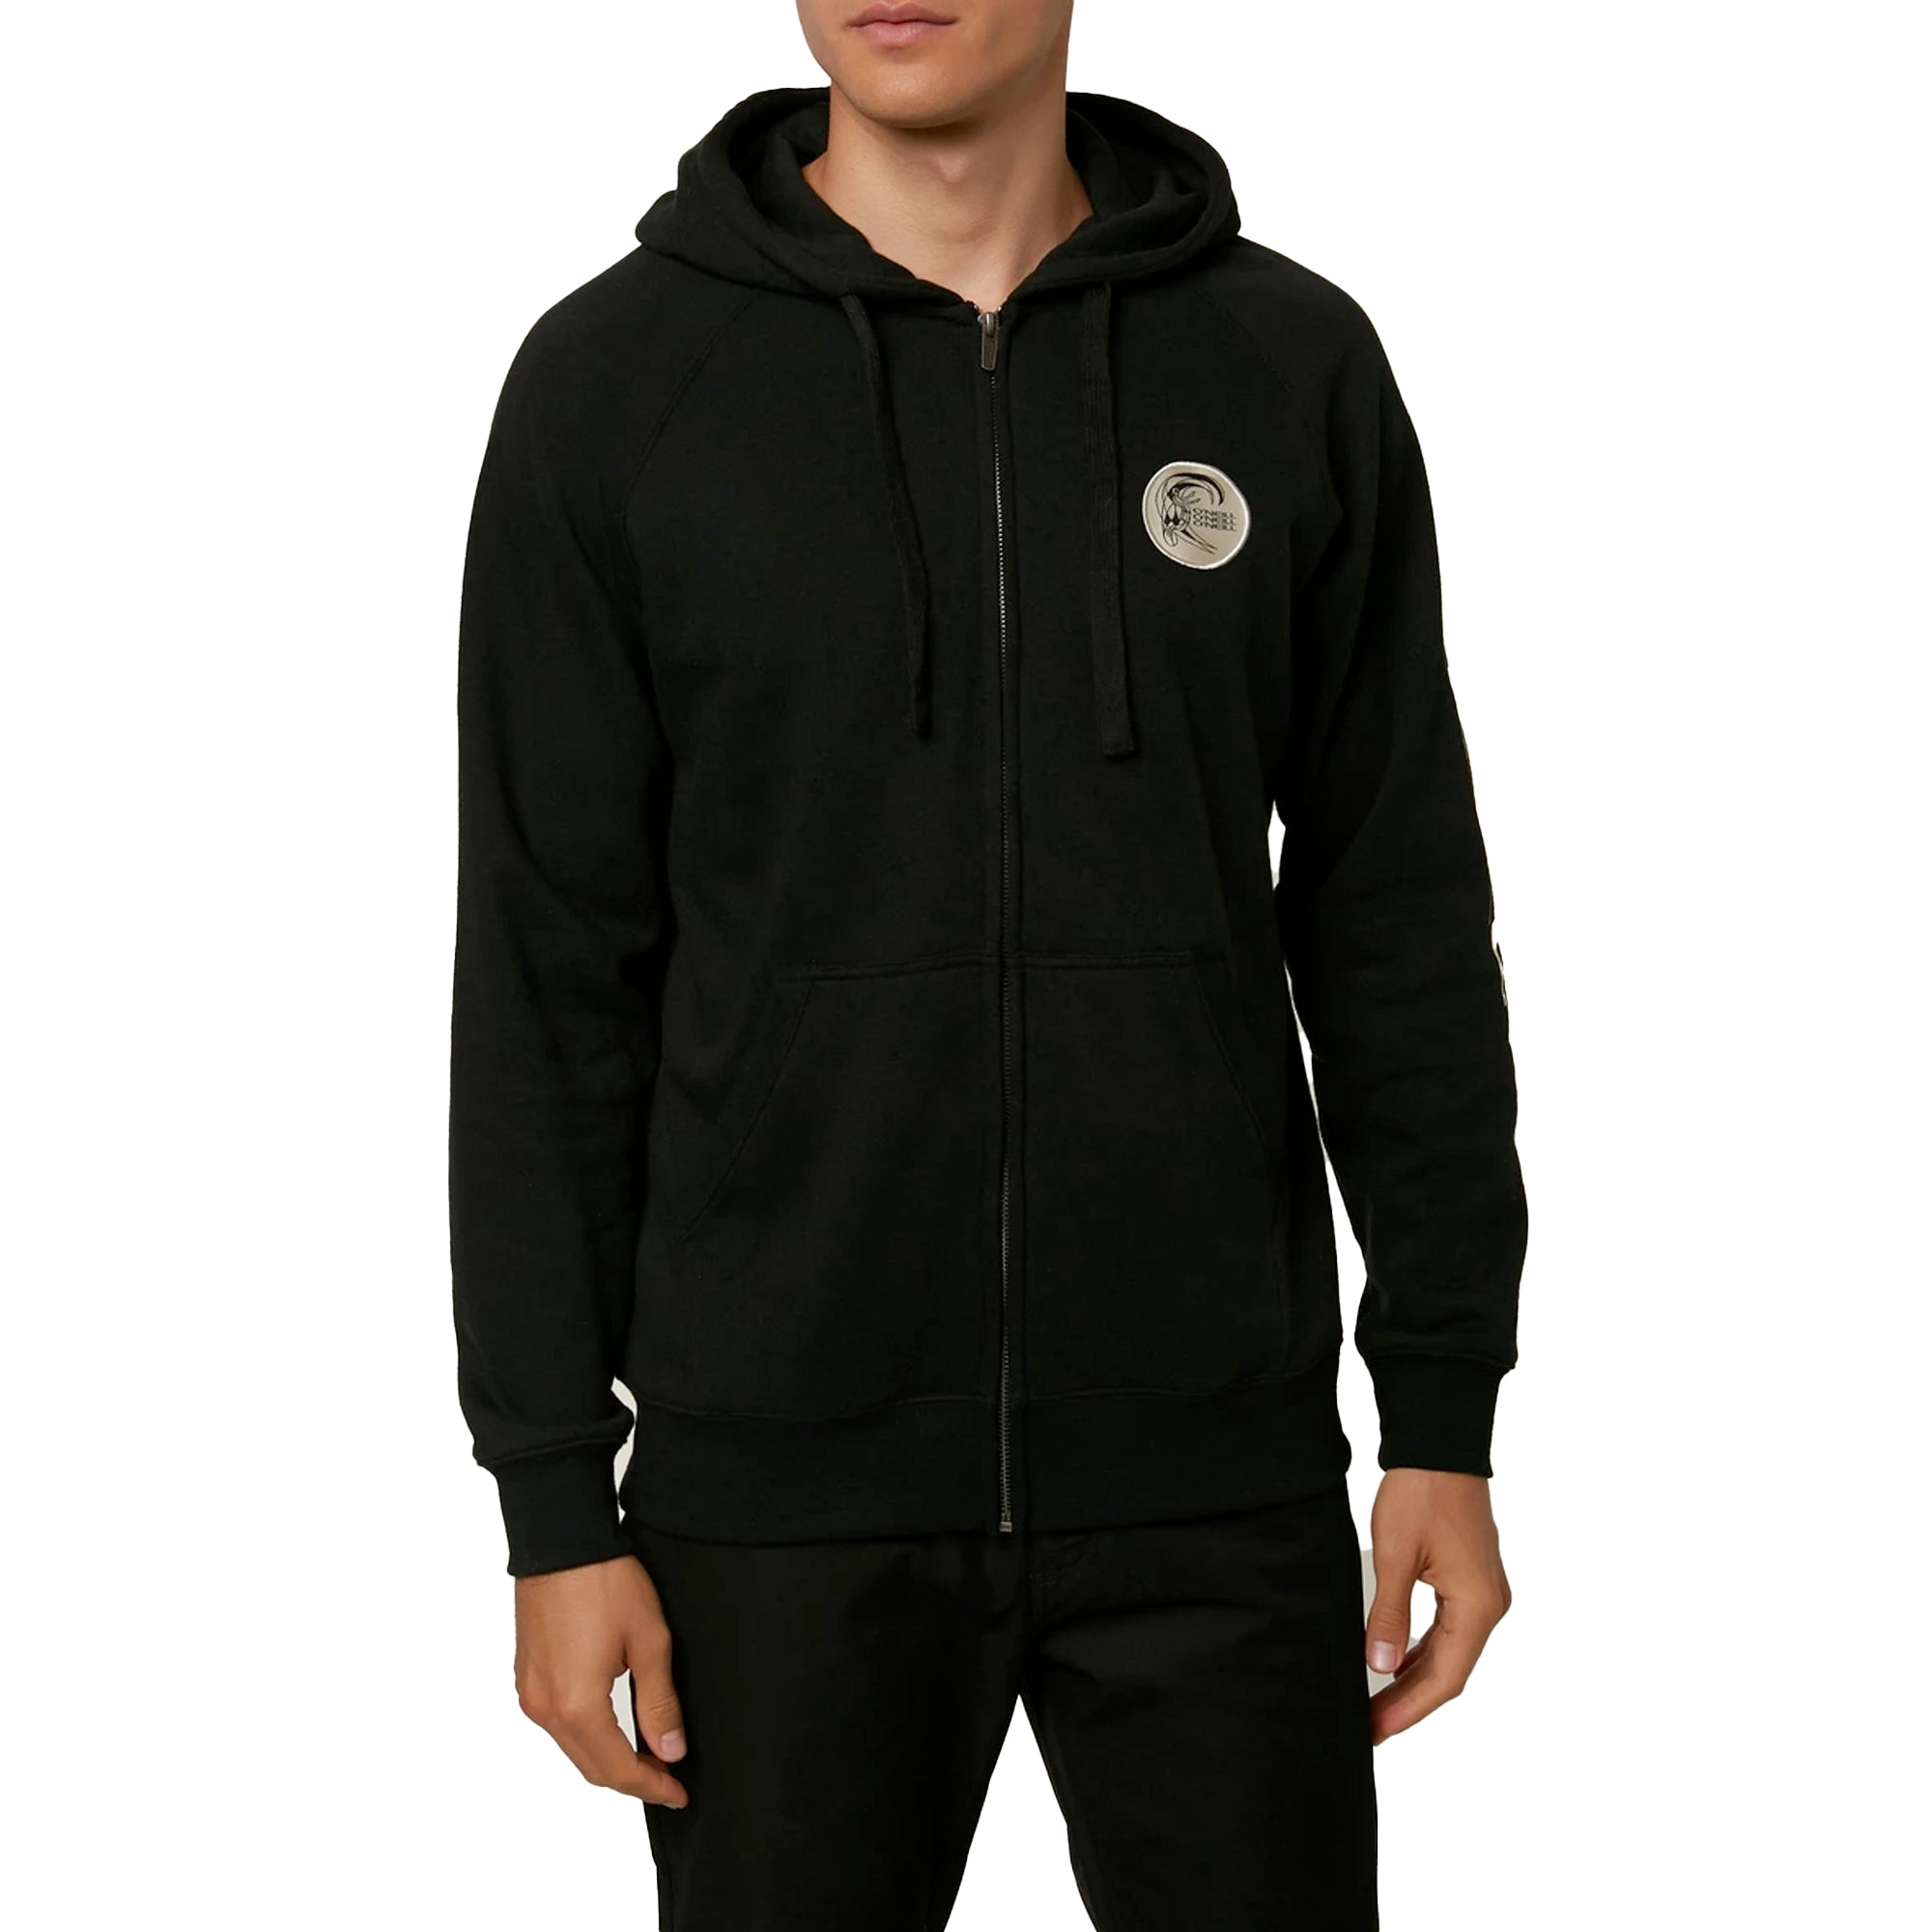 O'Neill Fifty Two Men's Zip-Up Hoodie